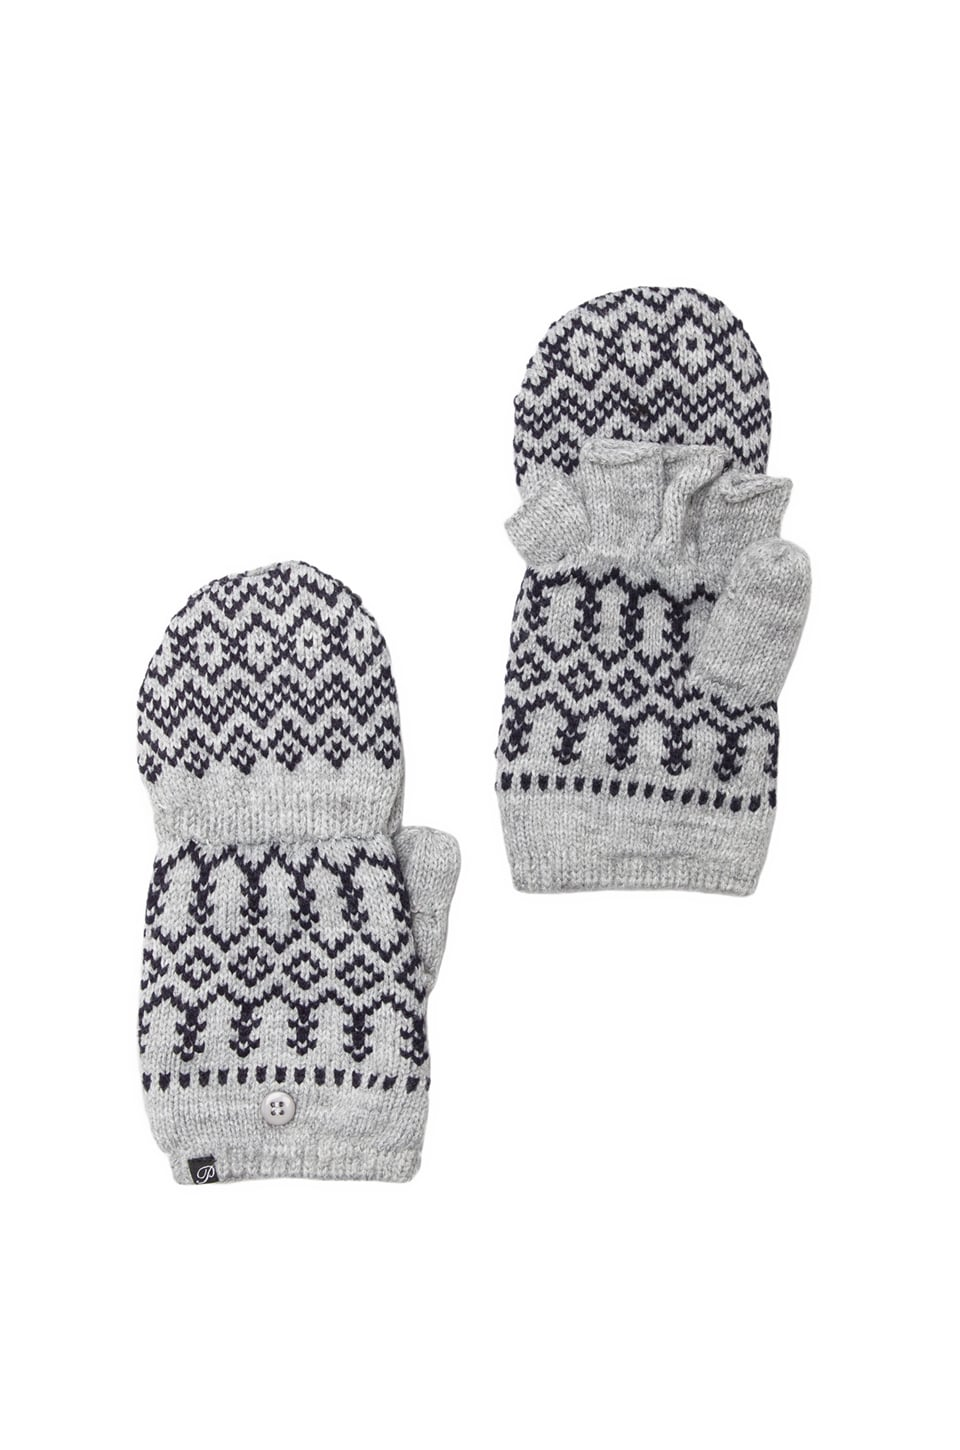 Plush Scandinavian Texting Mittens in Heather Grey/ Navy